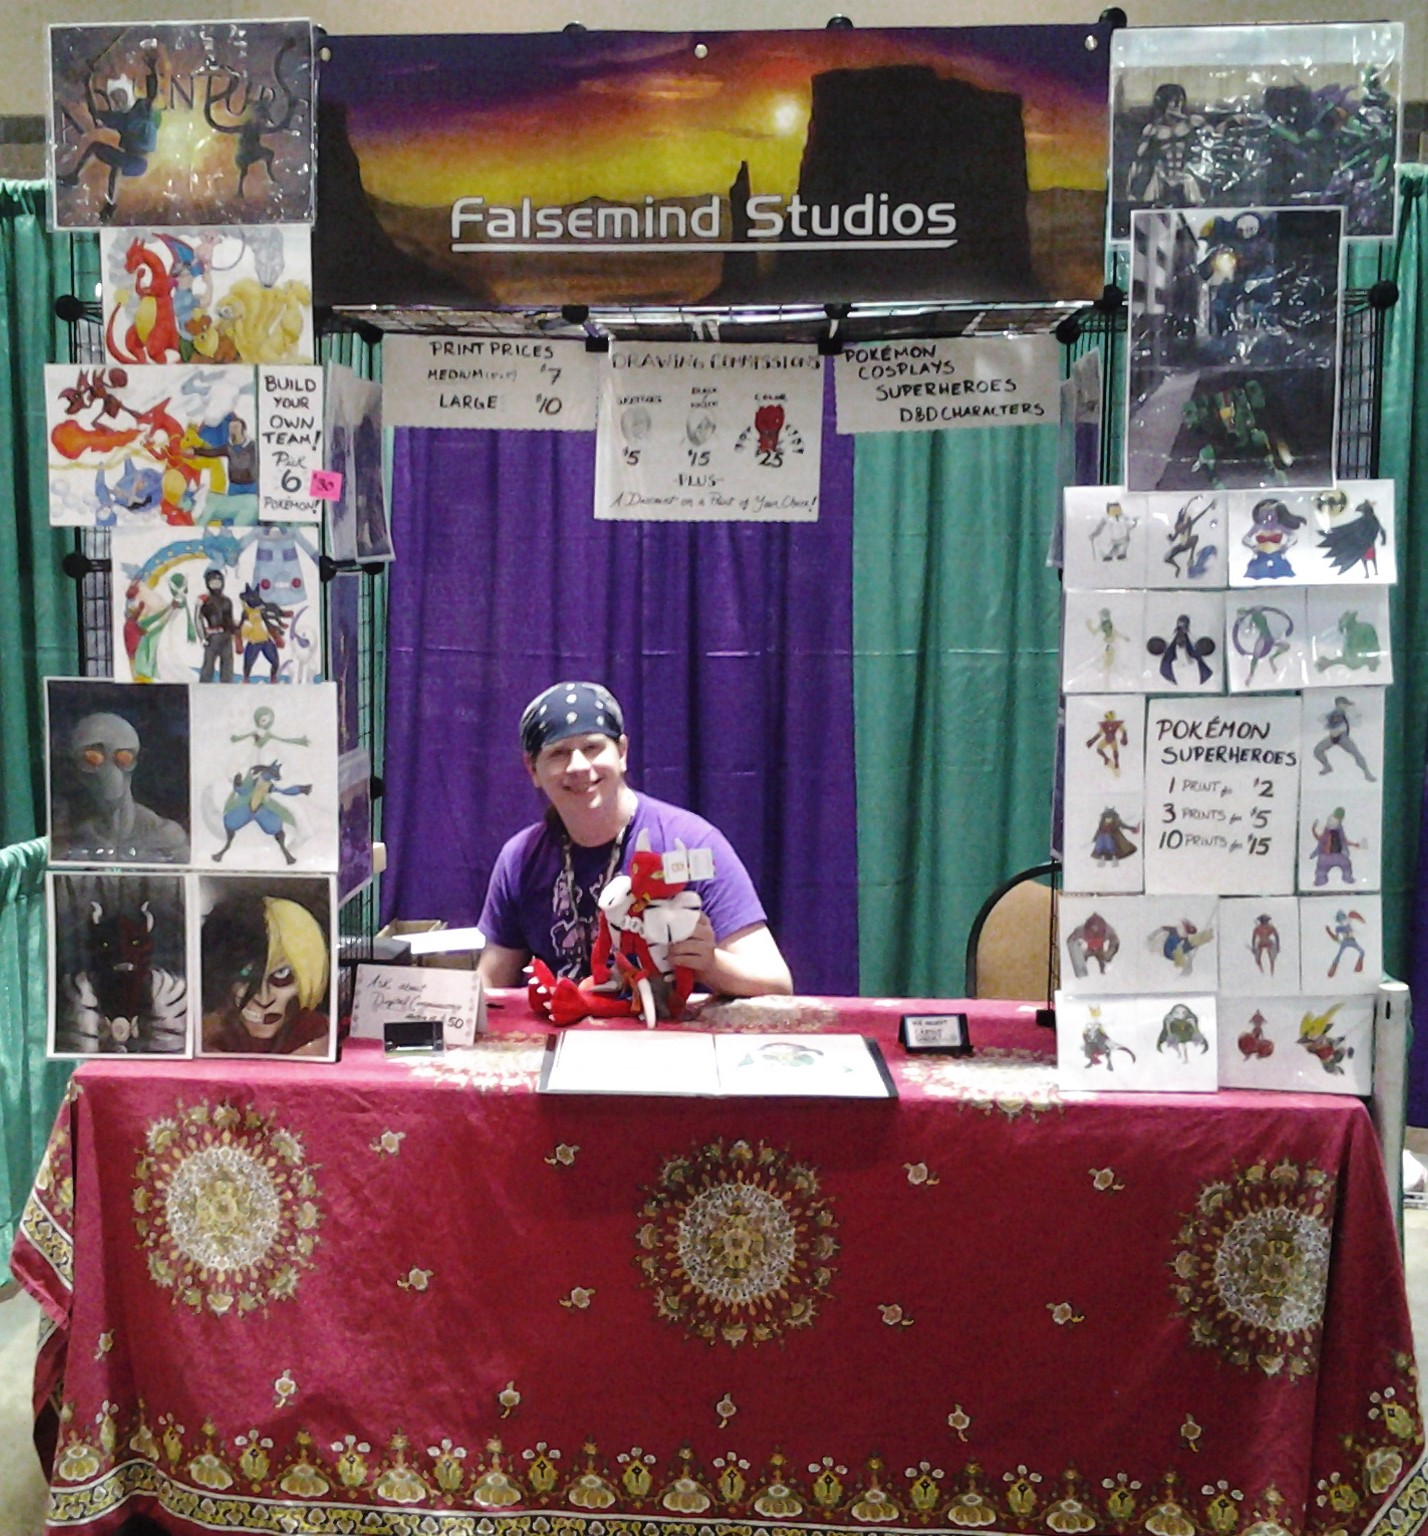 Falsemind Studios Booth at ConnectiCon 2015!